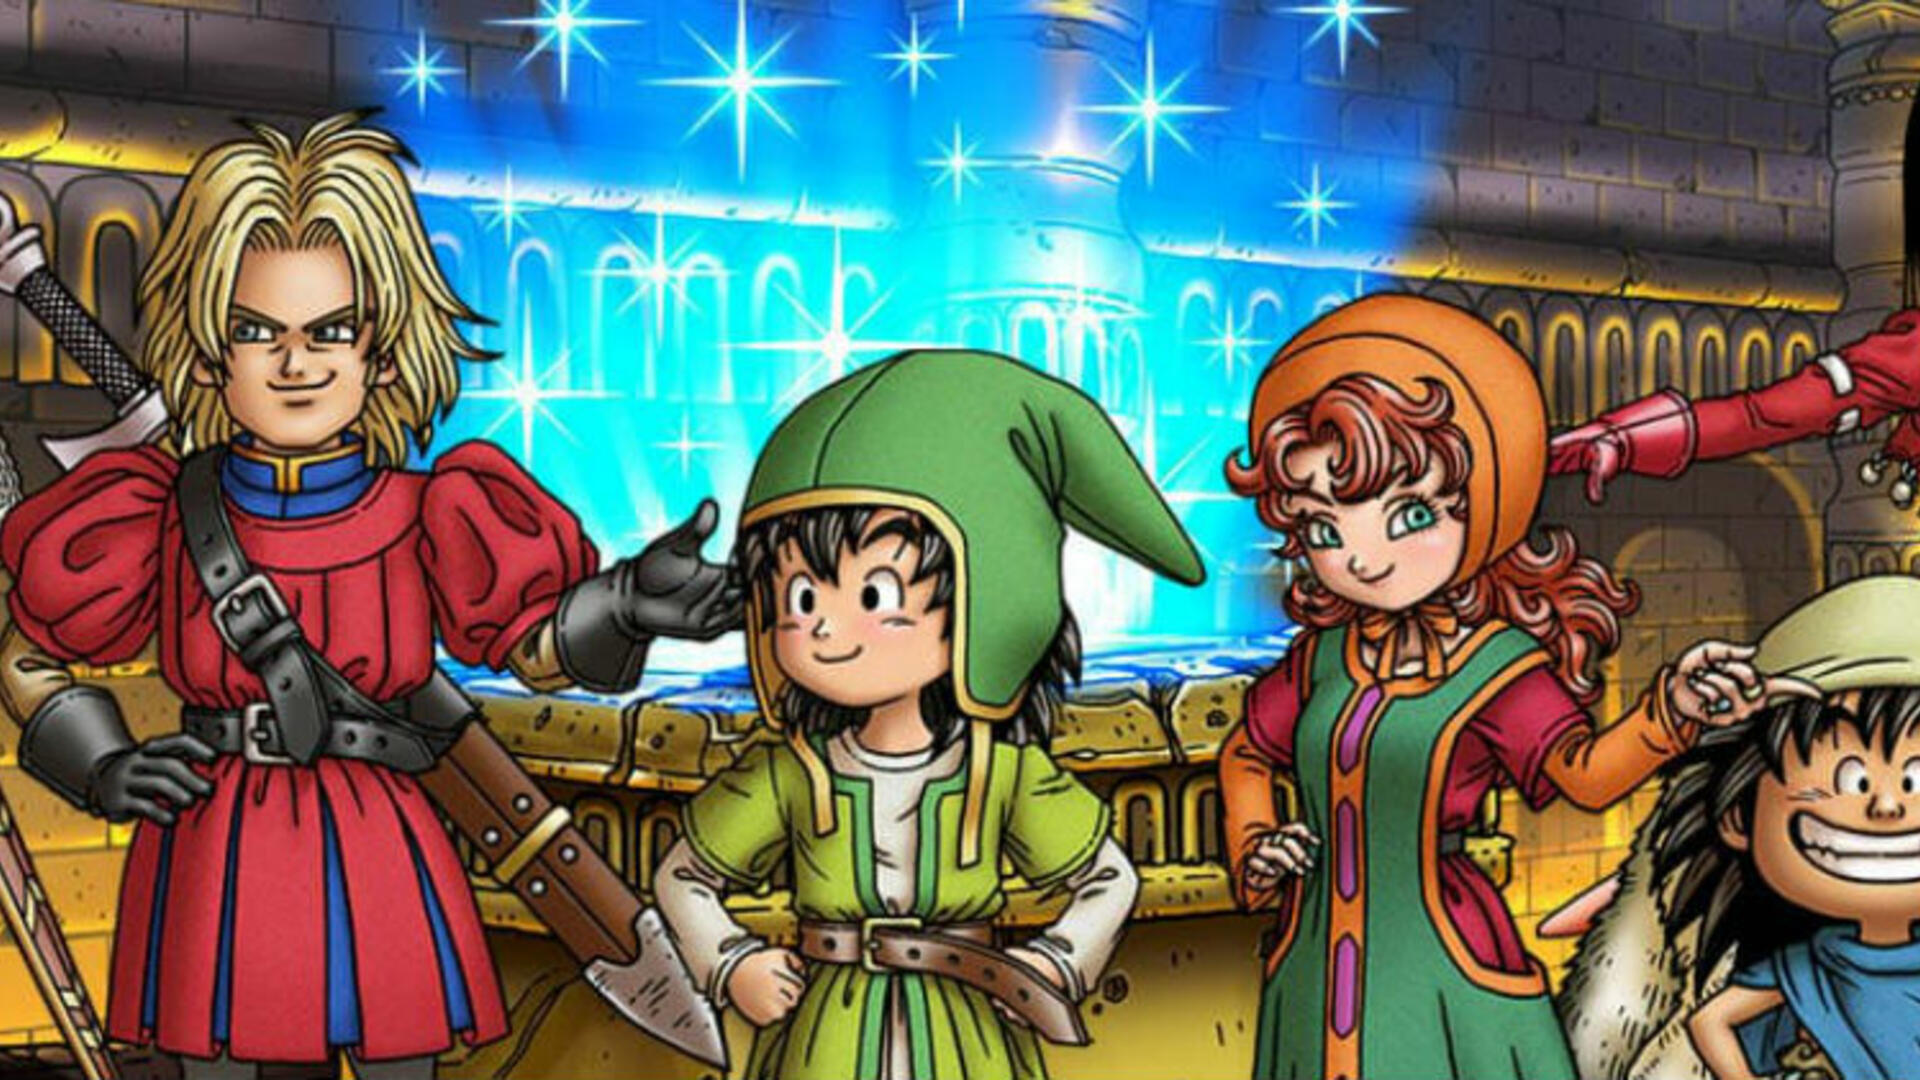 Dragon Quest 7 Fliegender Teppich